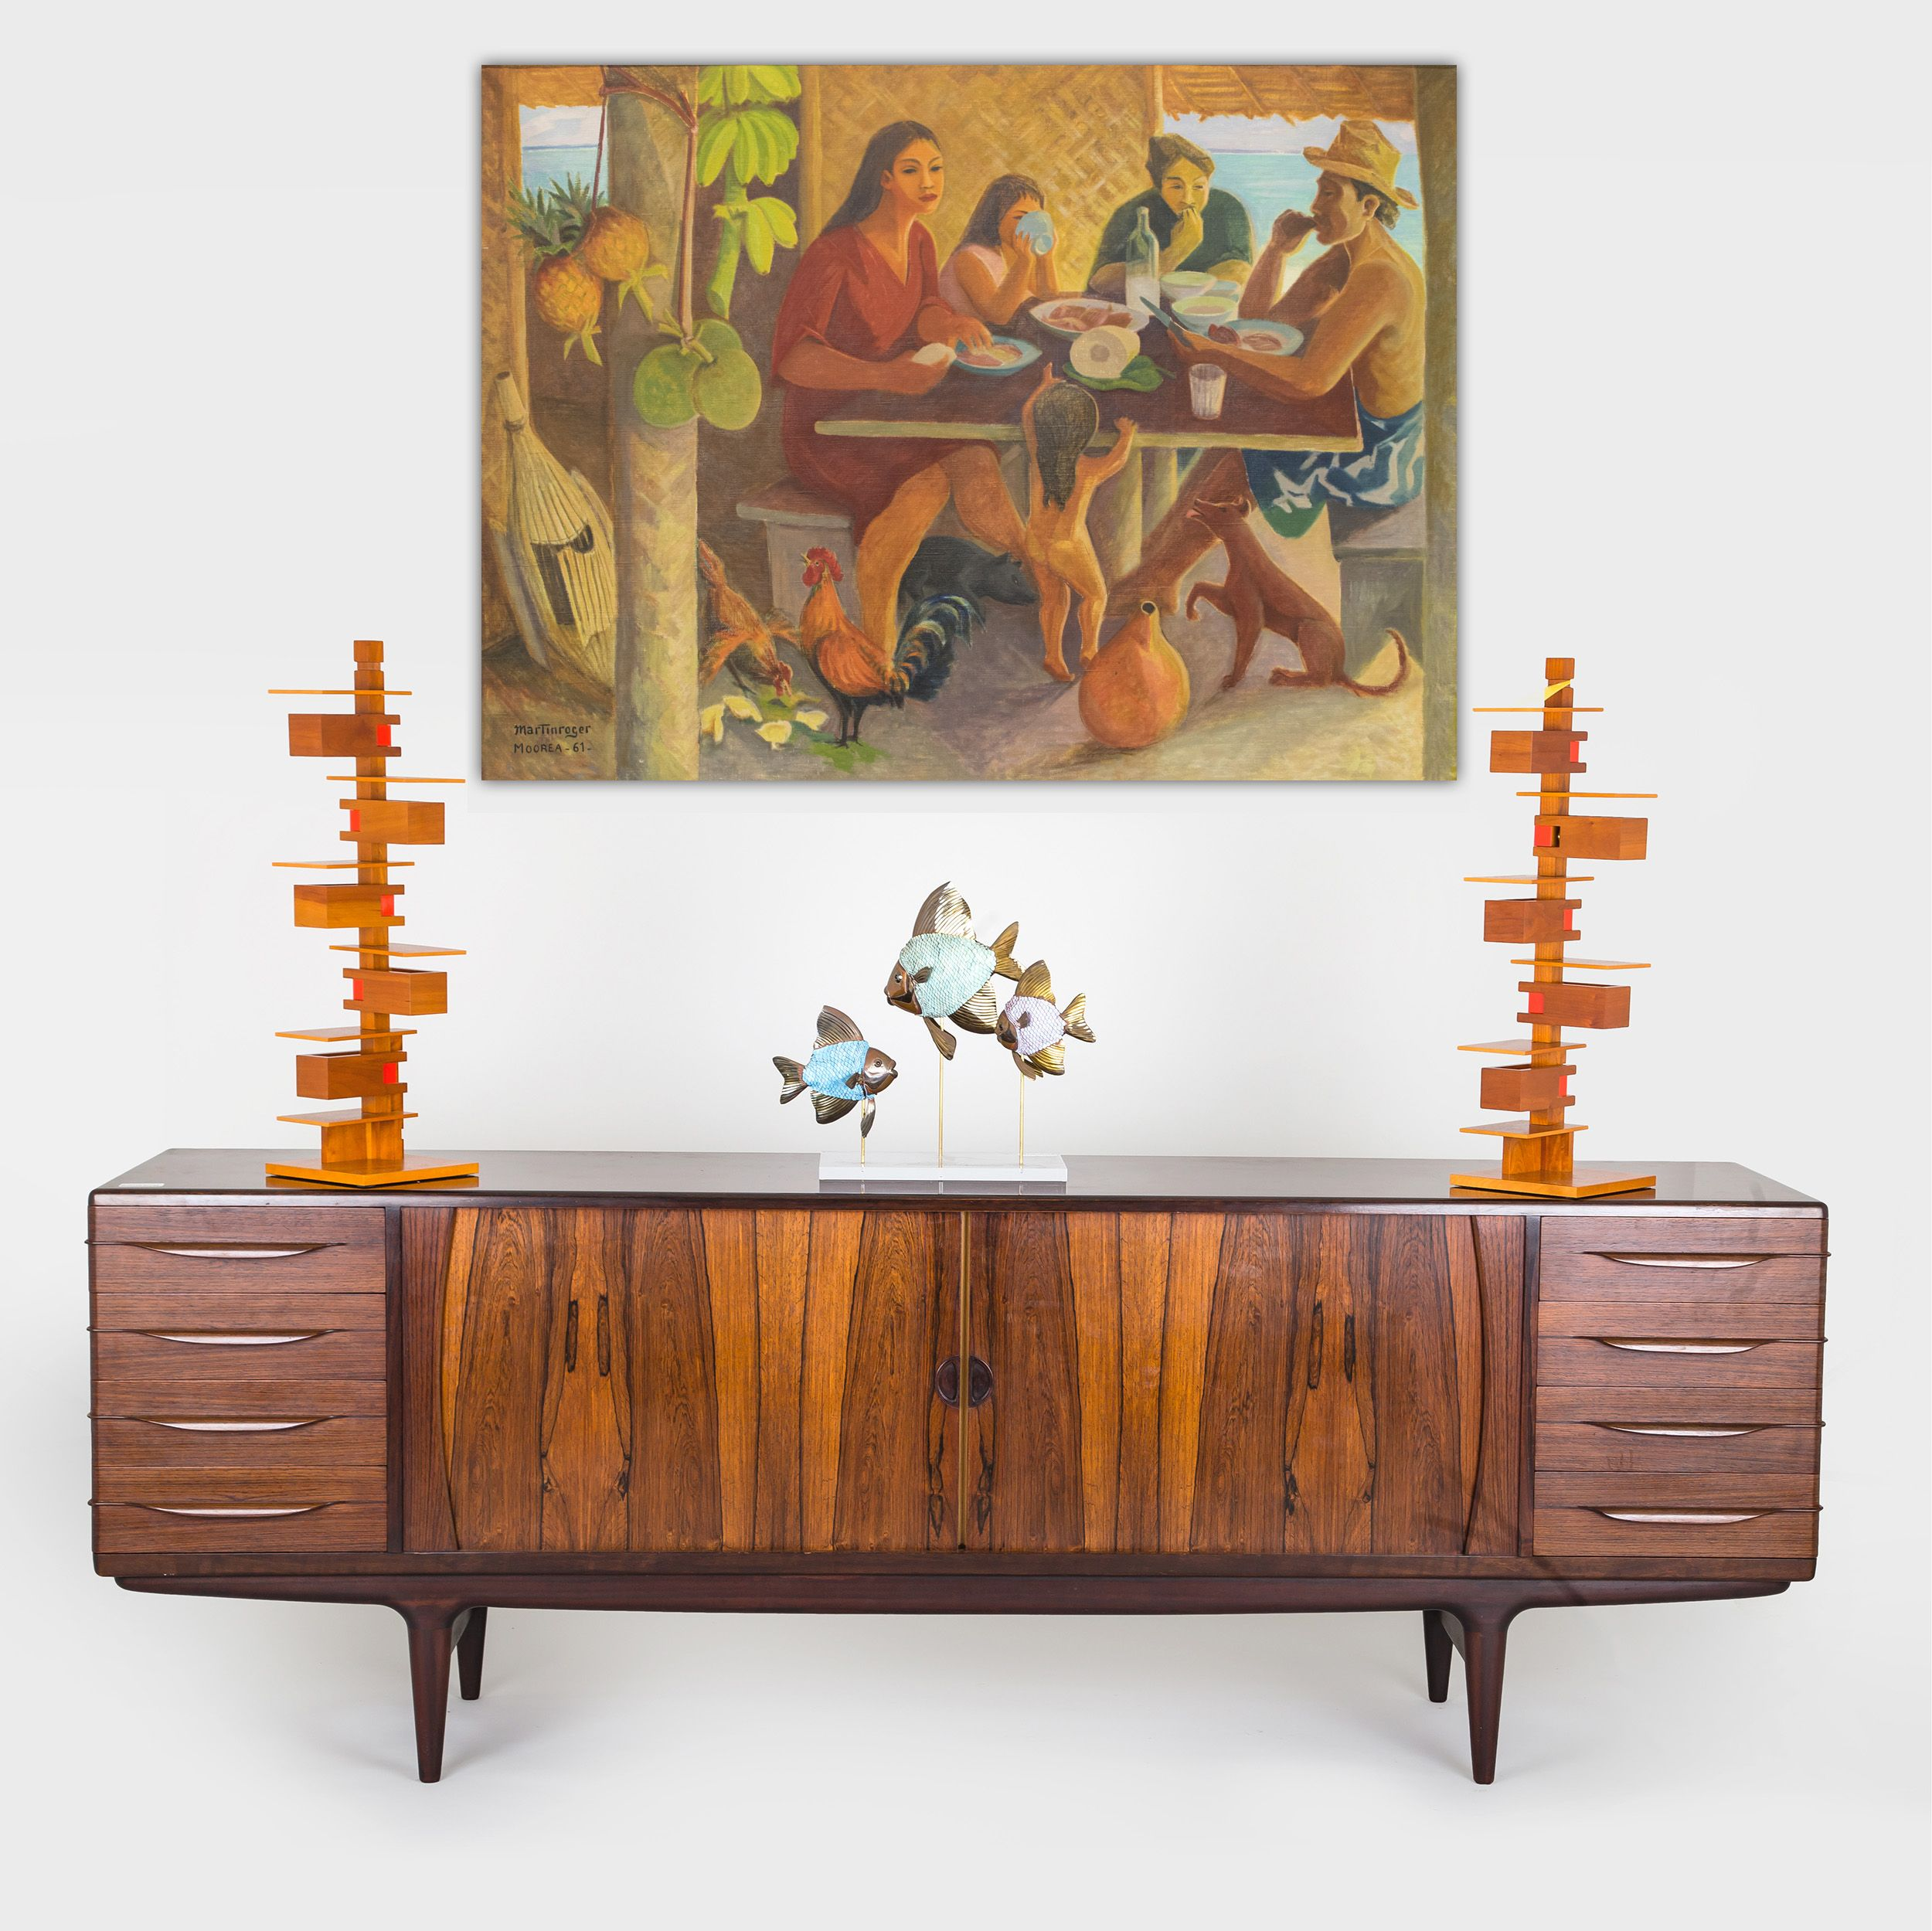 Mid century modern furniture art is sold every thursday at abell auction co in los angeles